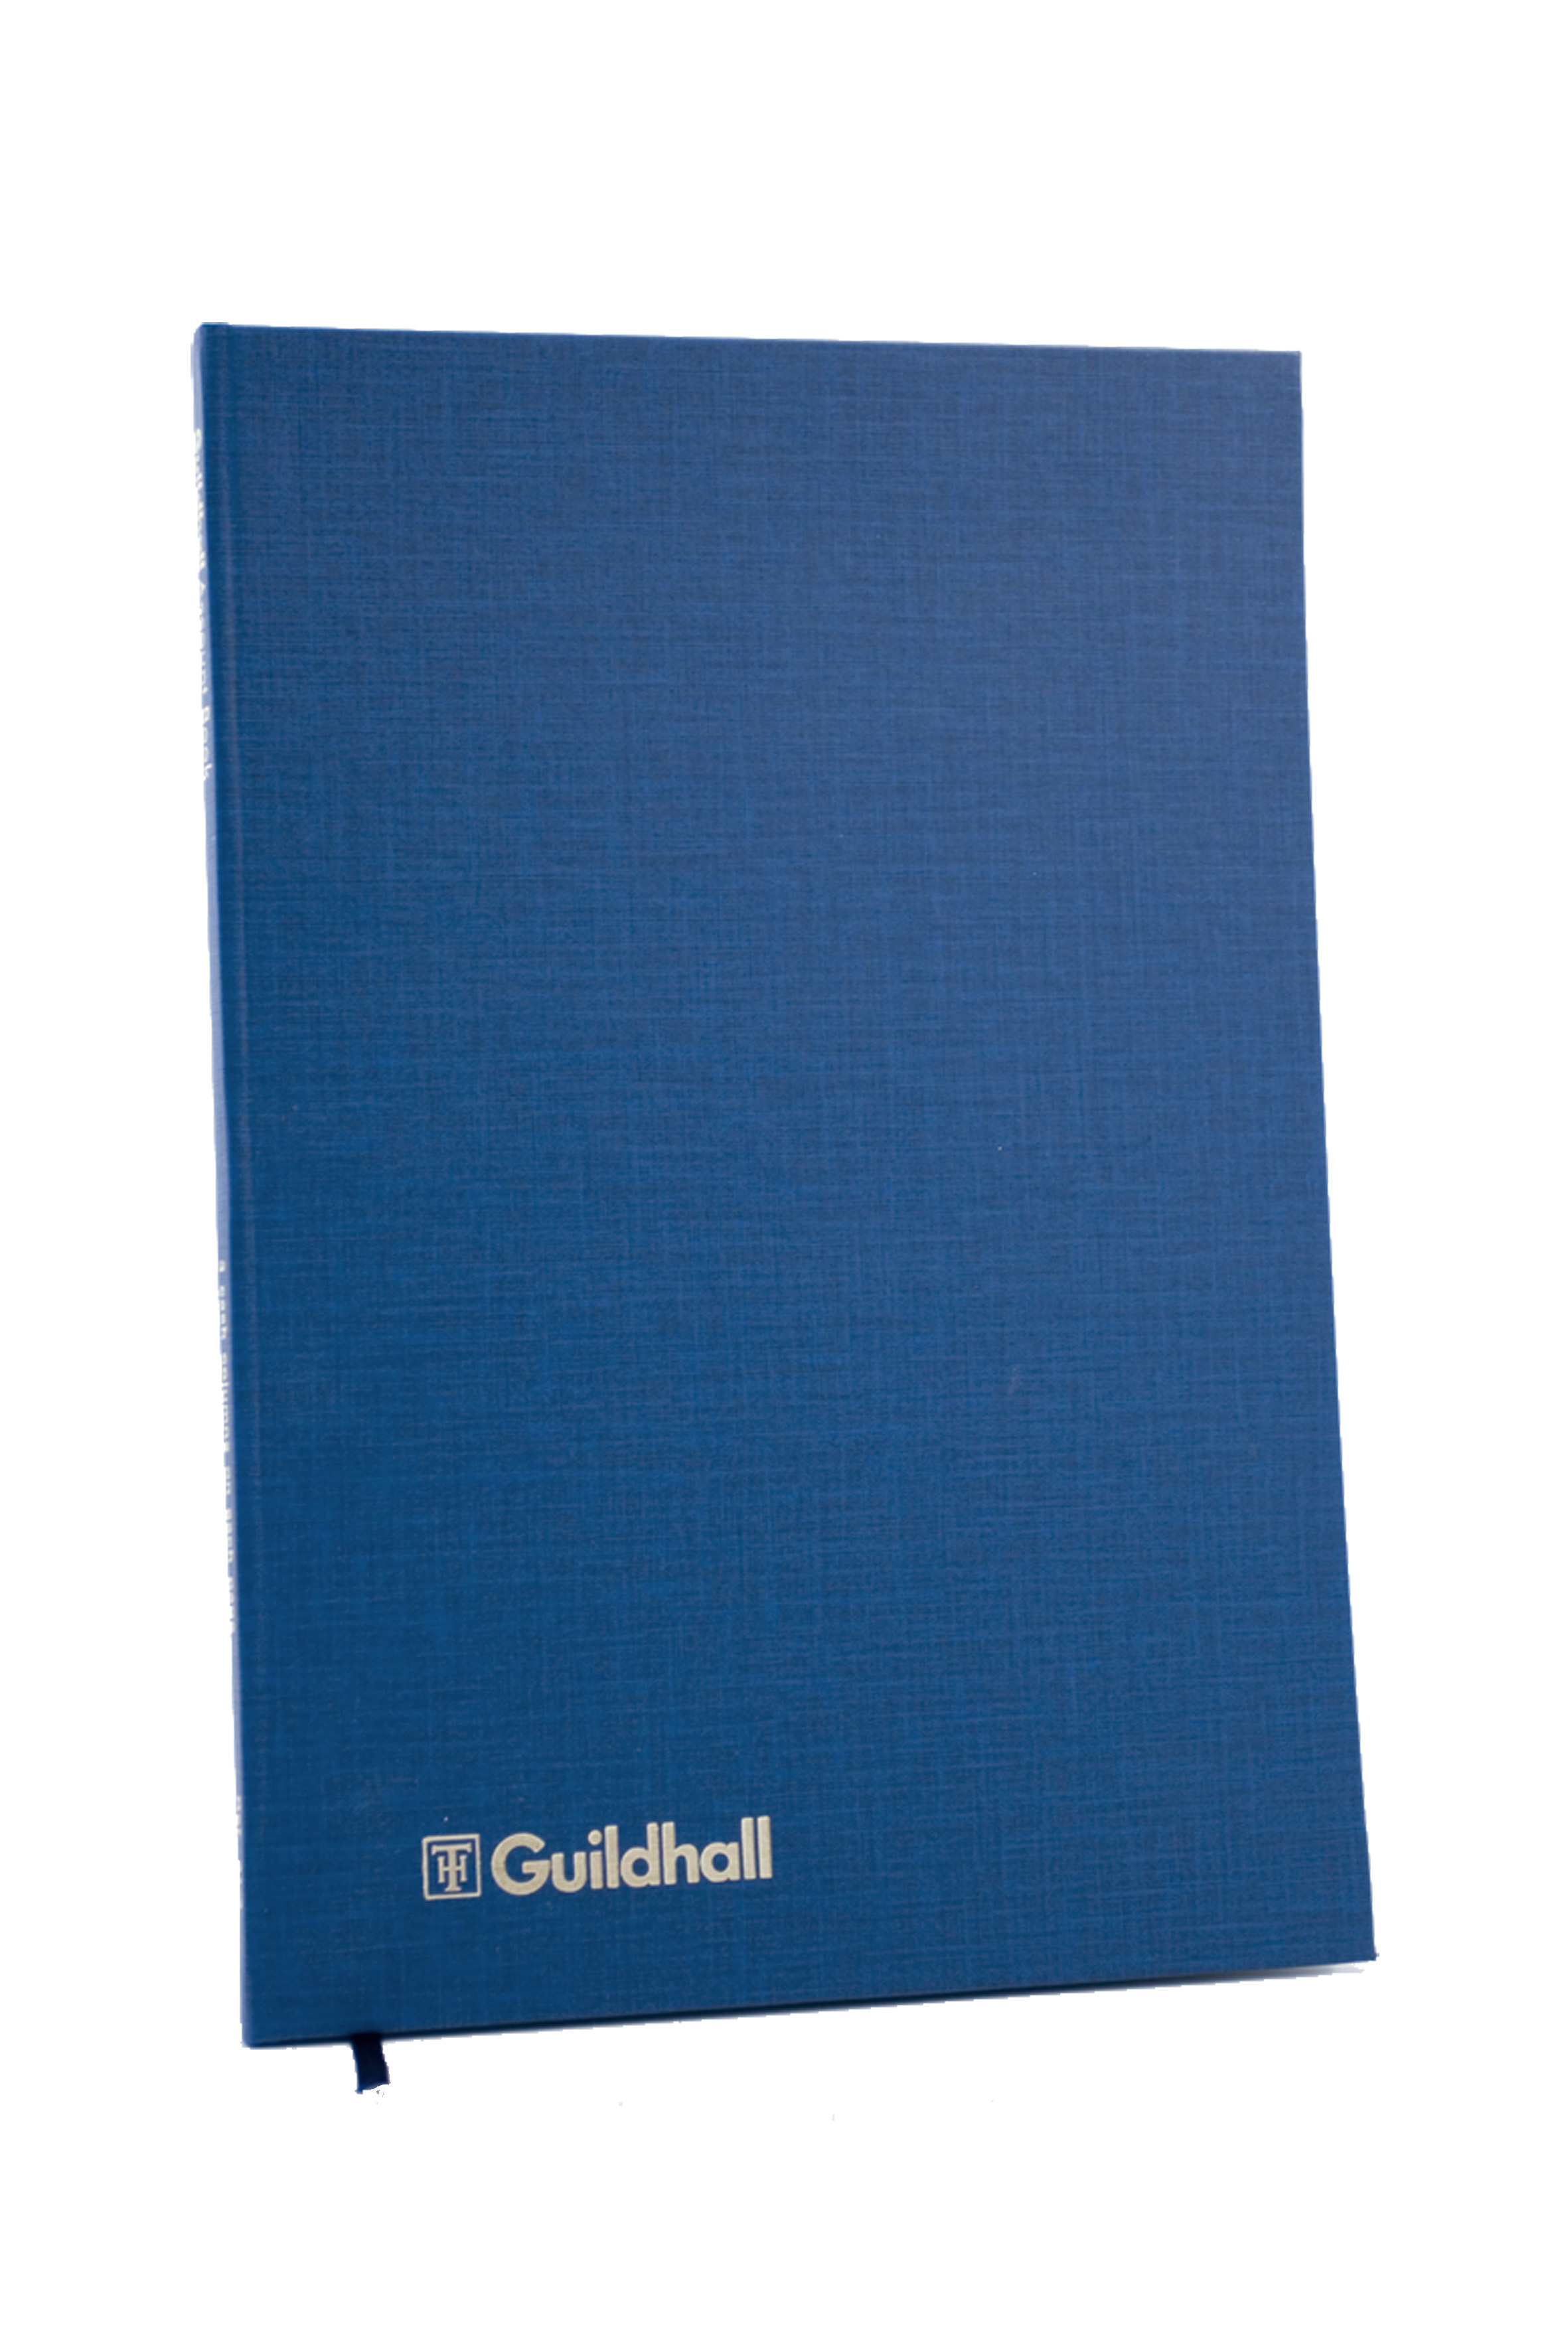 Guildhall Account Book 31 Series 5 Col